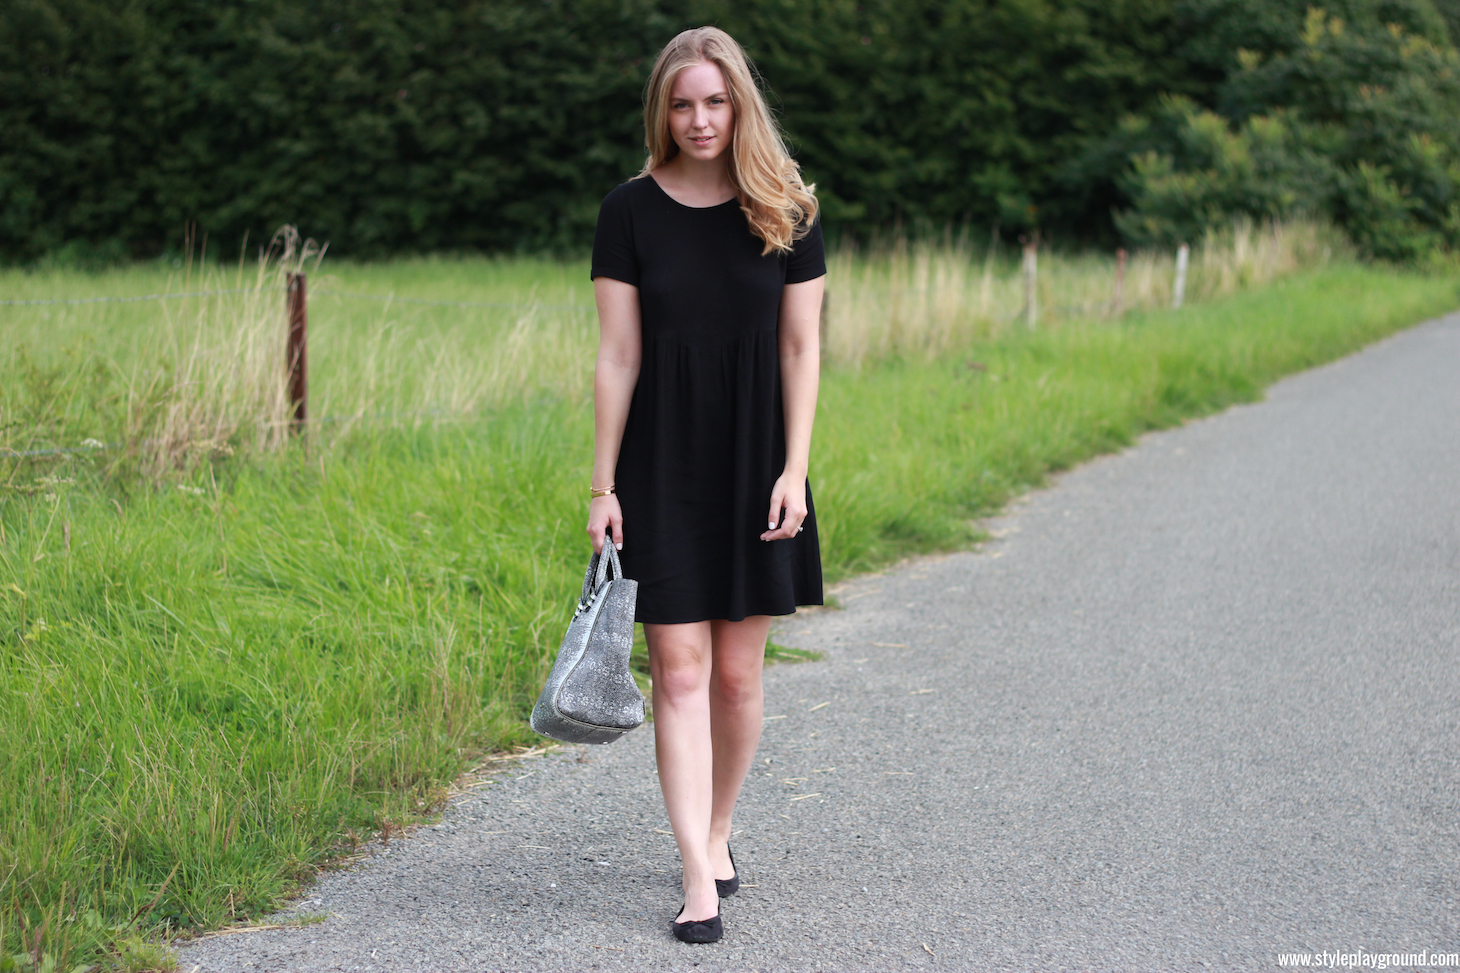 Axelle Blanpain of Style playground is wearing a Bash dress, Rebecca Minkoff mini Perry tote, H&M flats, Cartier love bracelet & Tiffany T bracelet